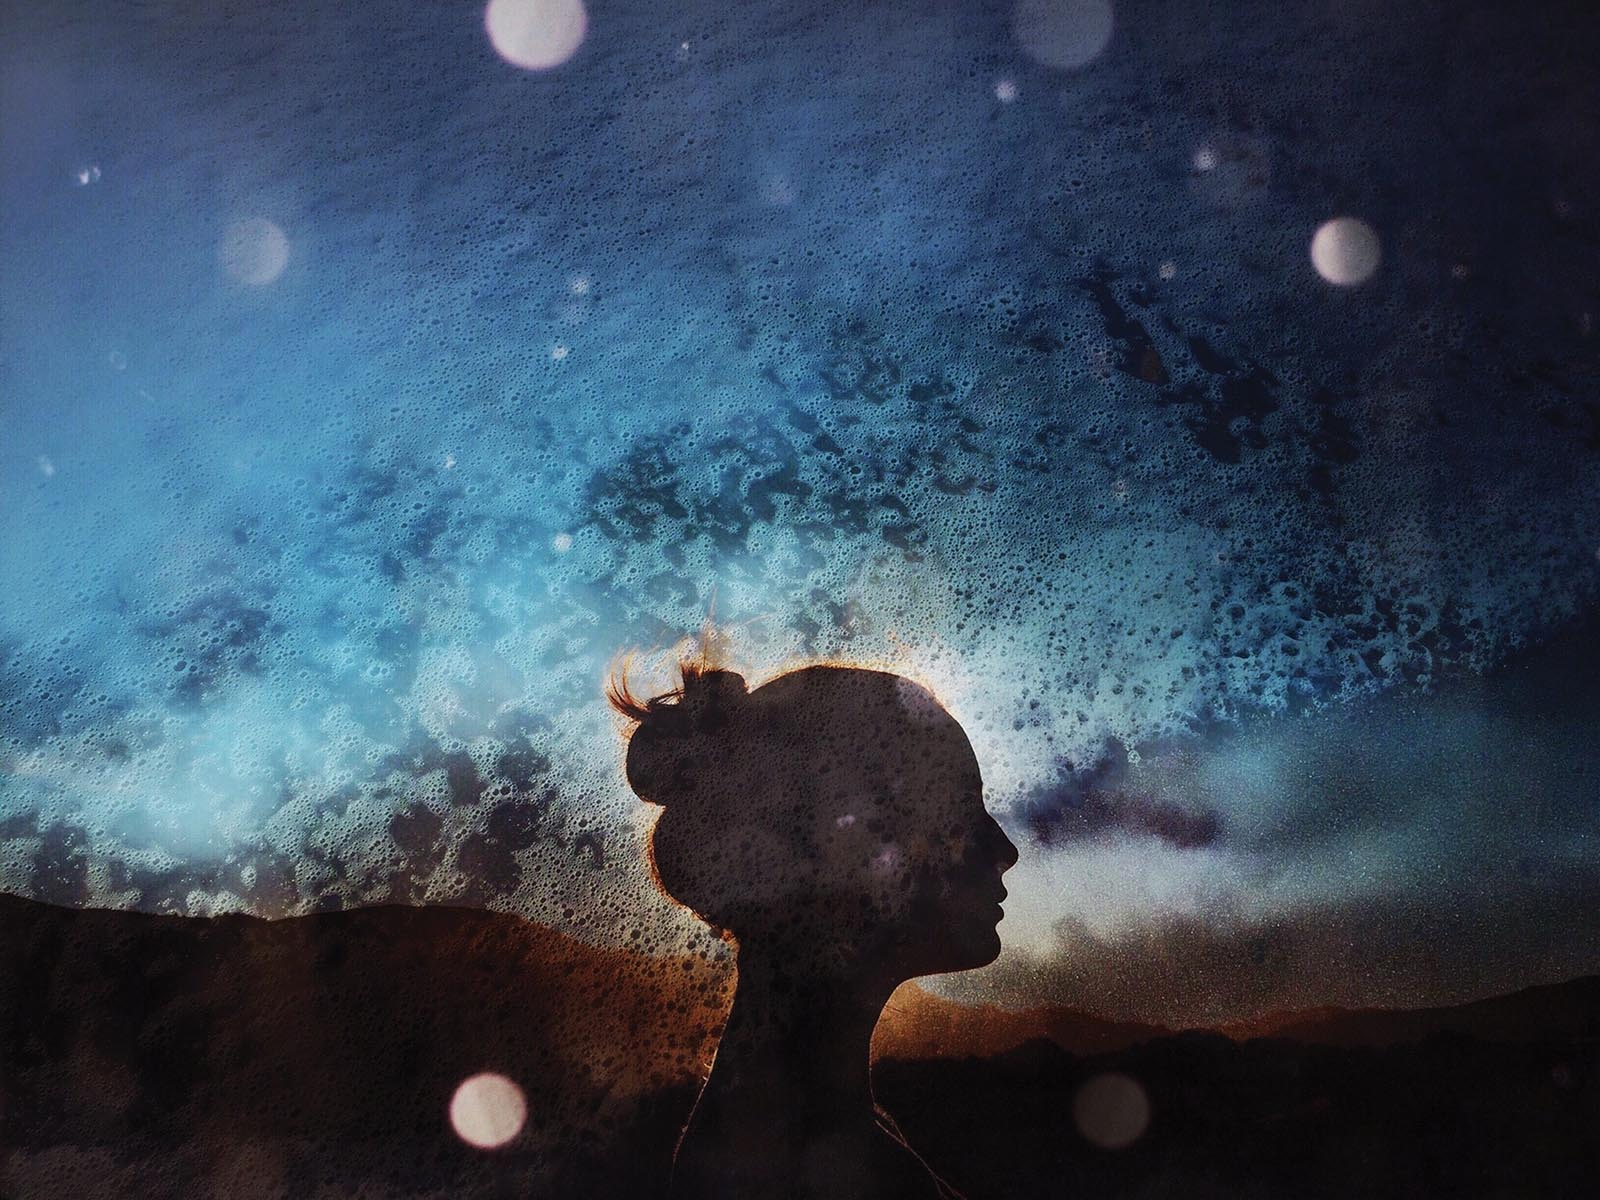 Creative photography of woman's head silhouette against sky